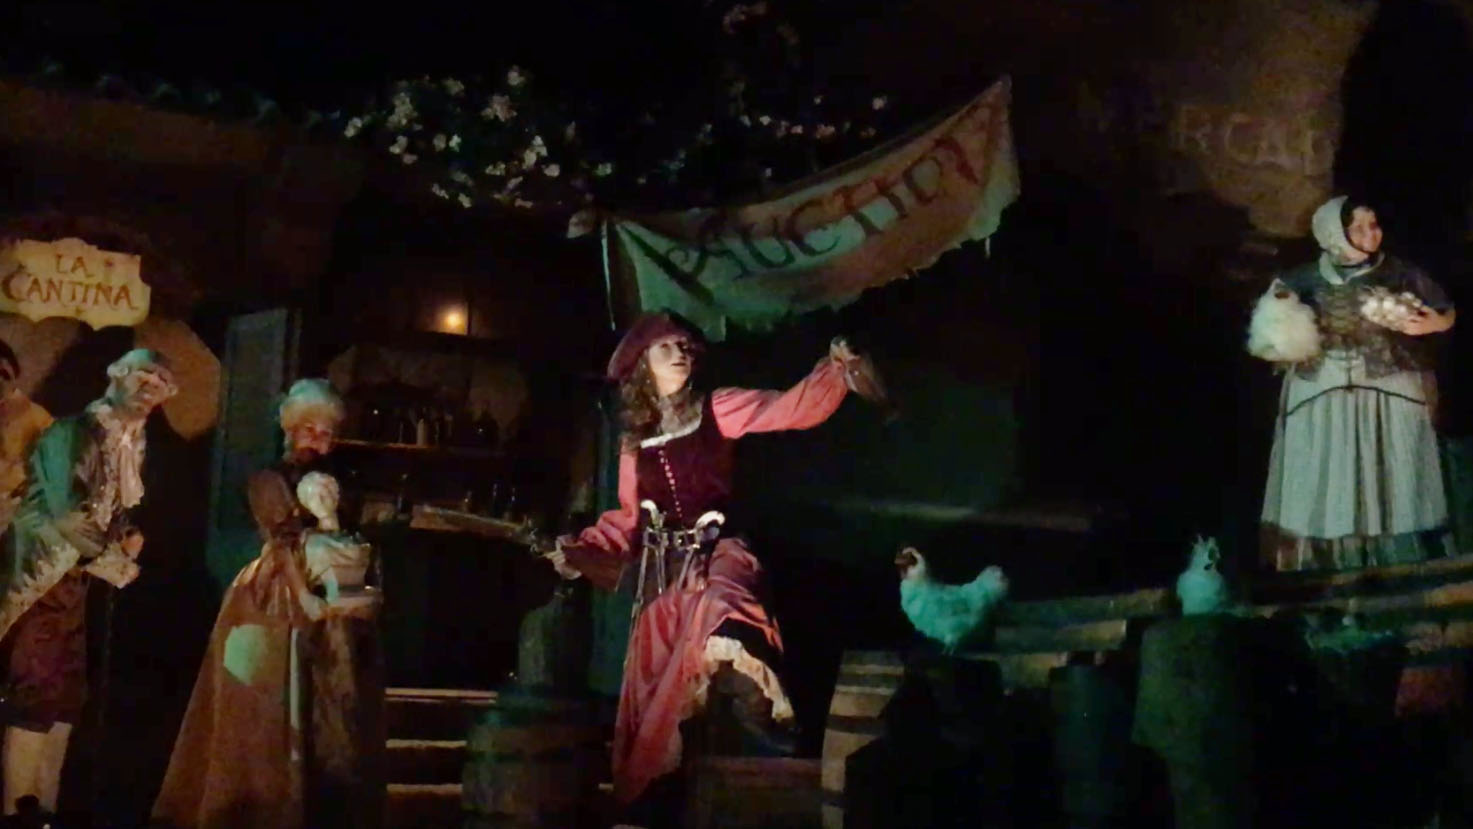 Redd the pirate is the newest addition to the classic Pirates of the Caribbean ride, which opened at Disneyland in 1967. The ride has undergone several transformations since then.